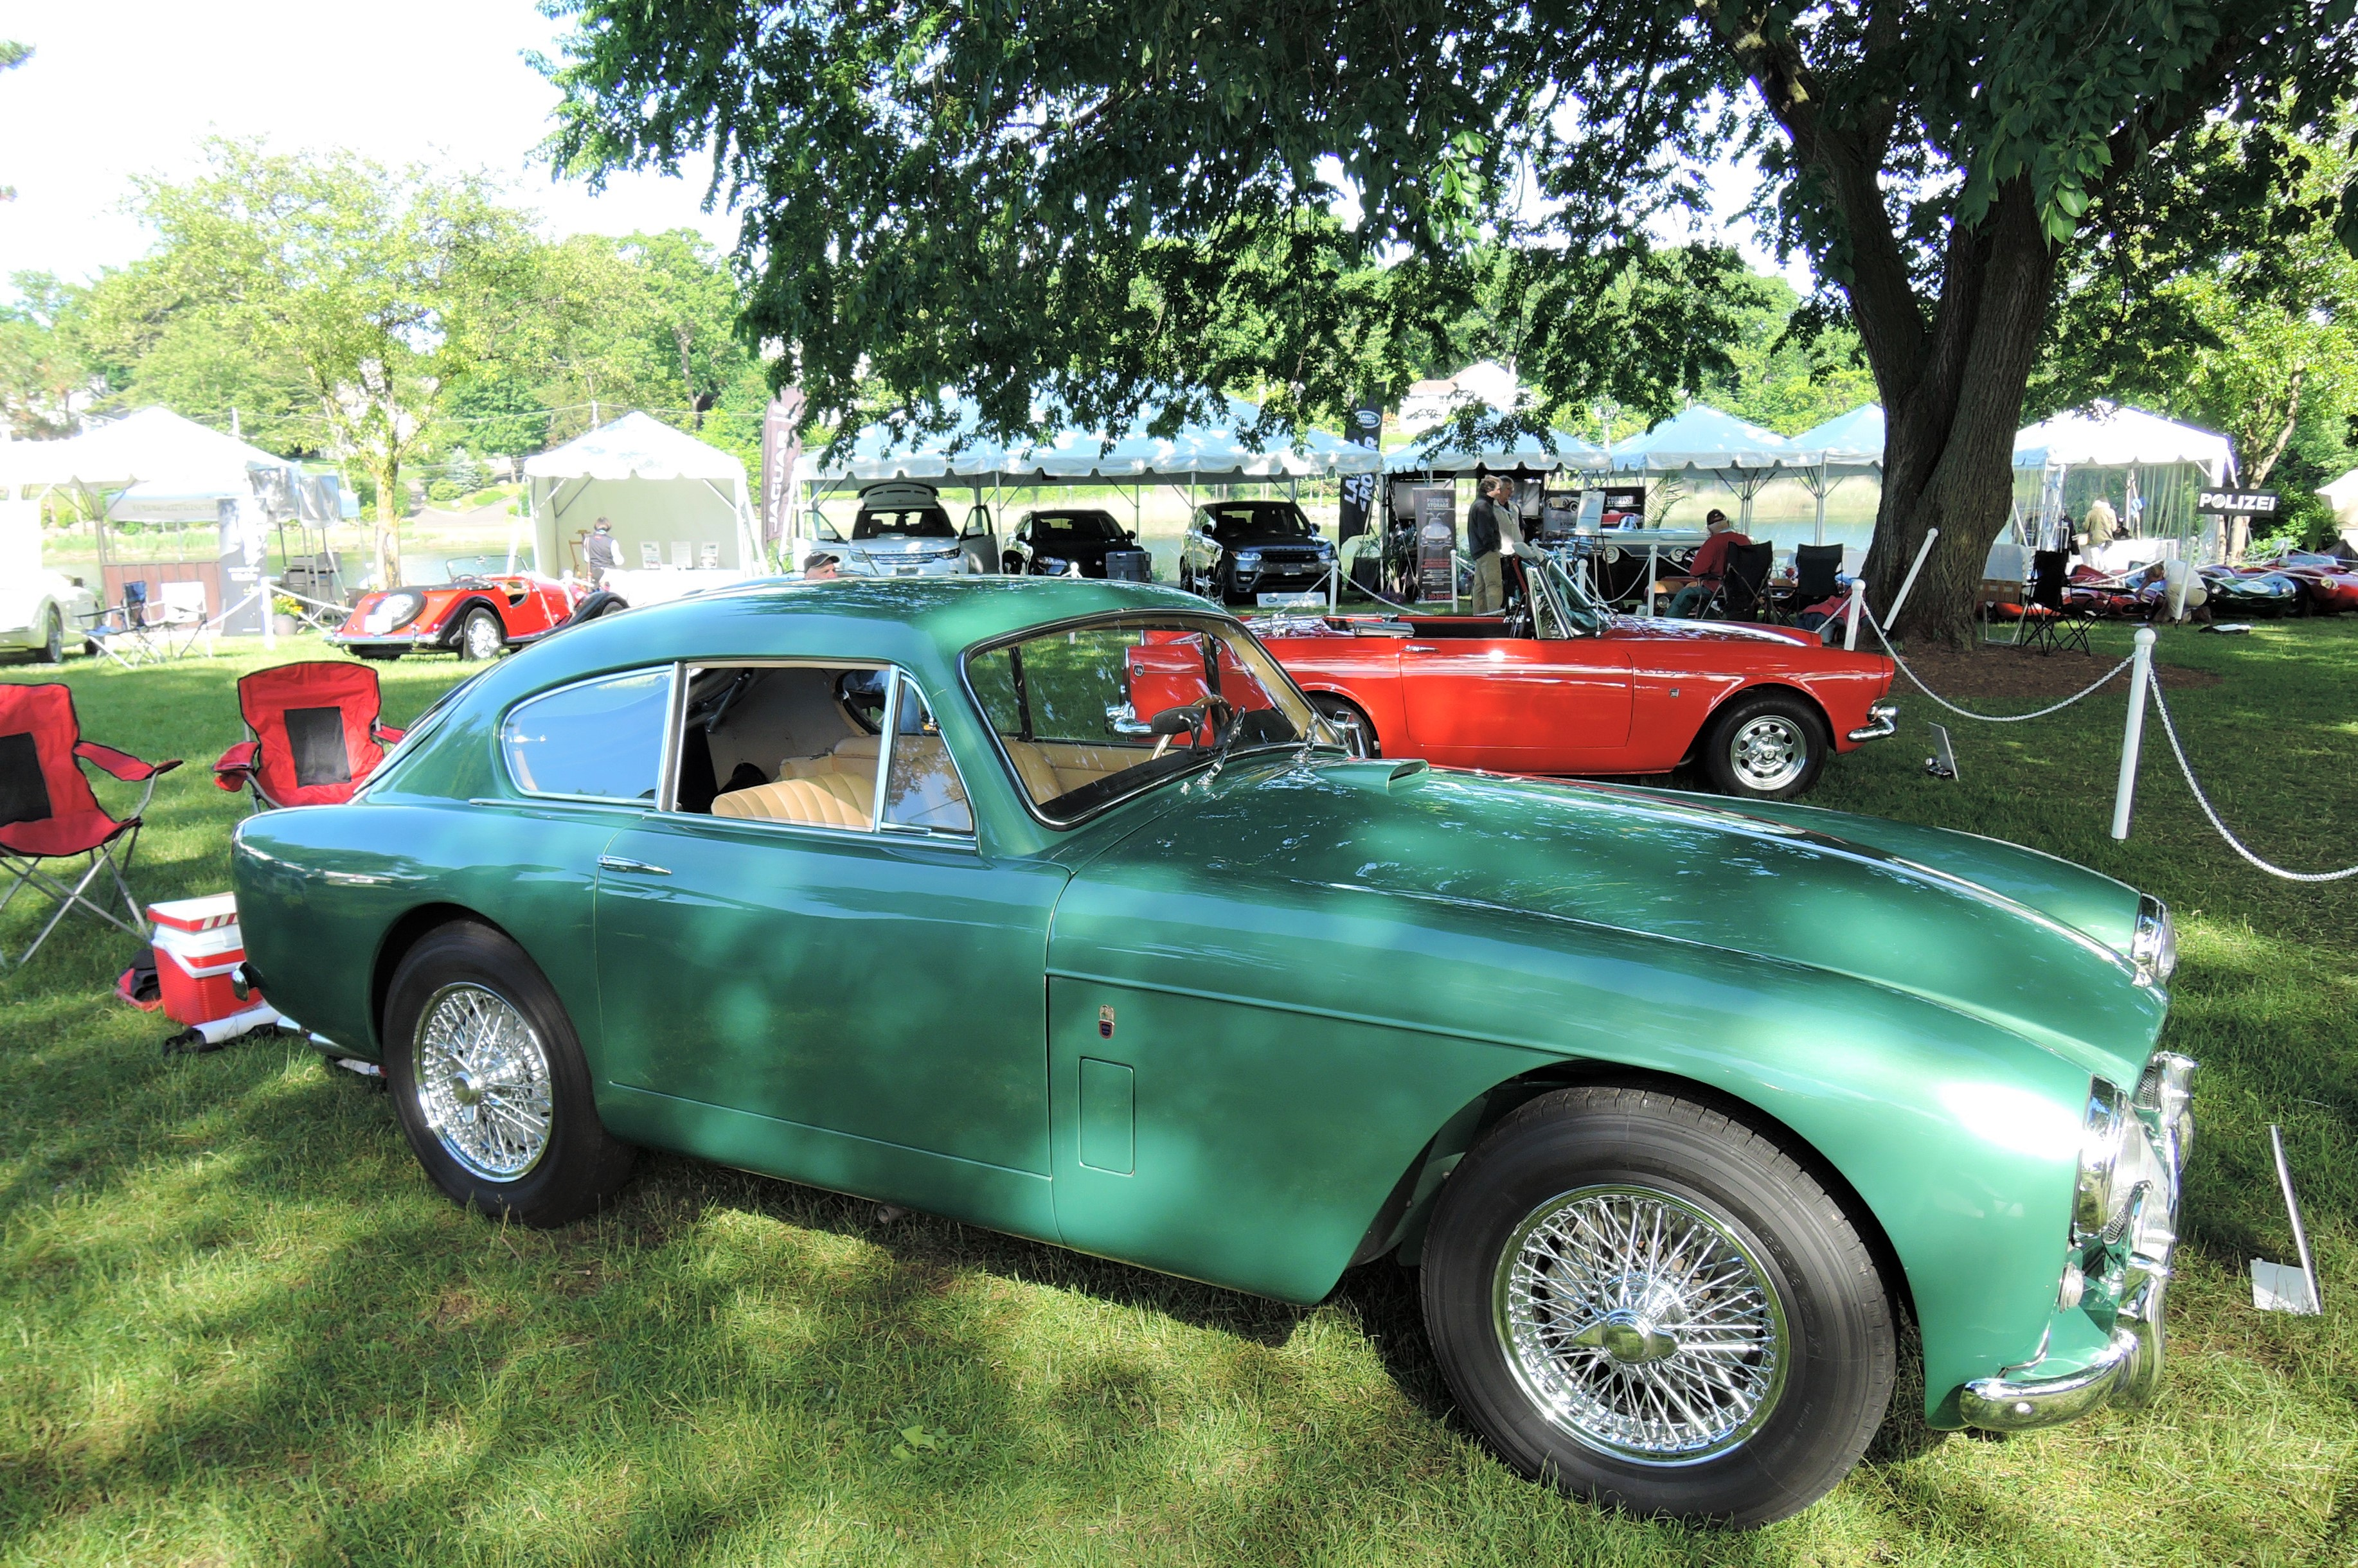 green 1958 Aston Martin DB 2/4 MK III Coupe - Greenwich Concours d'Elegance 2017